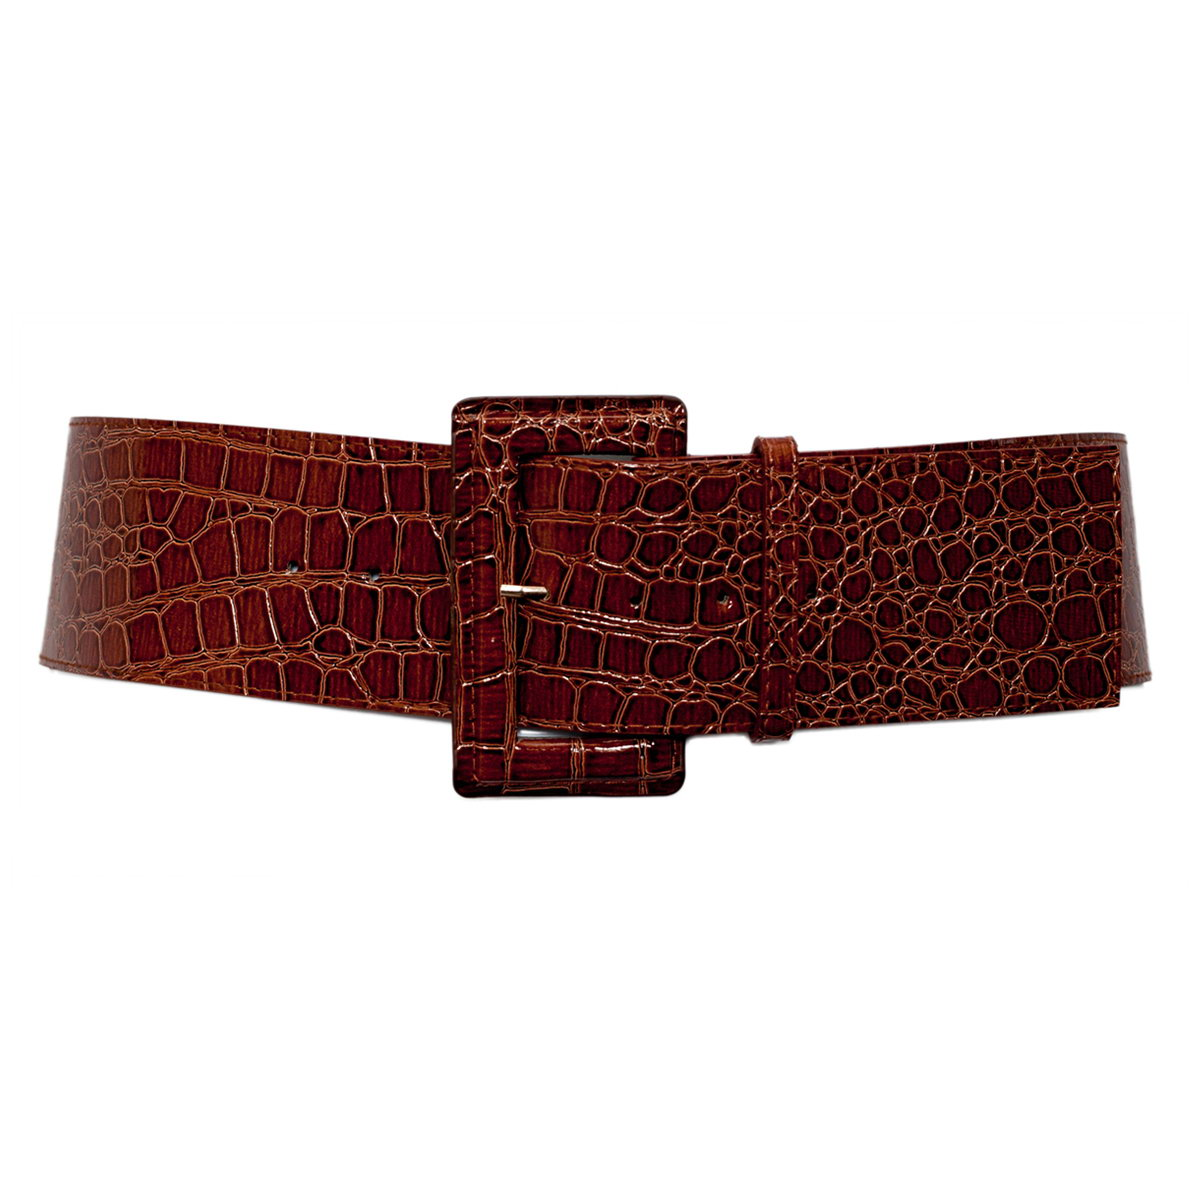 Plus Size Croco Print Patent Leather Belt Brown Photo 1